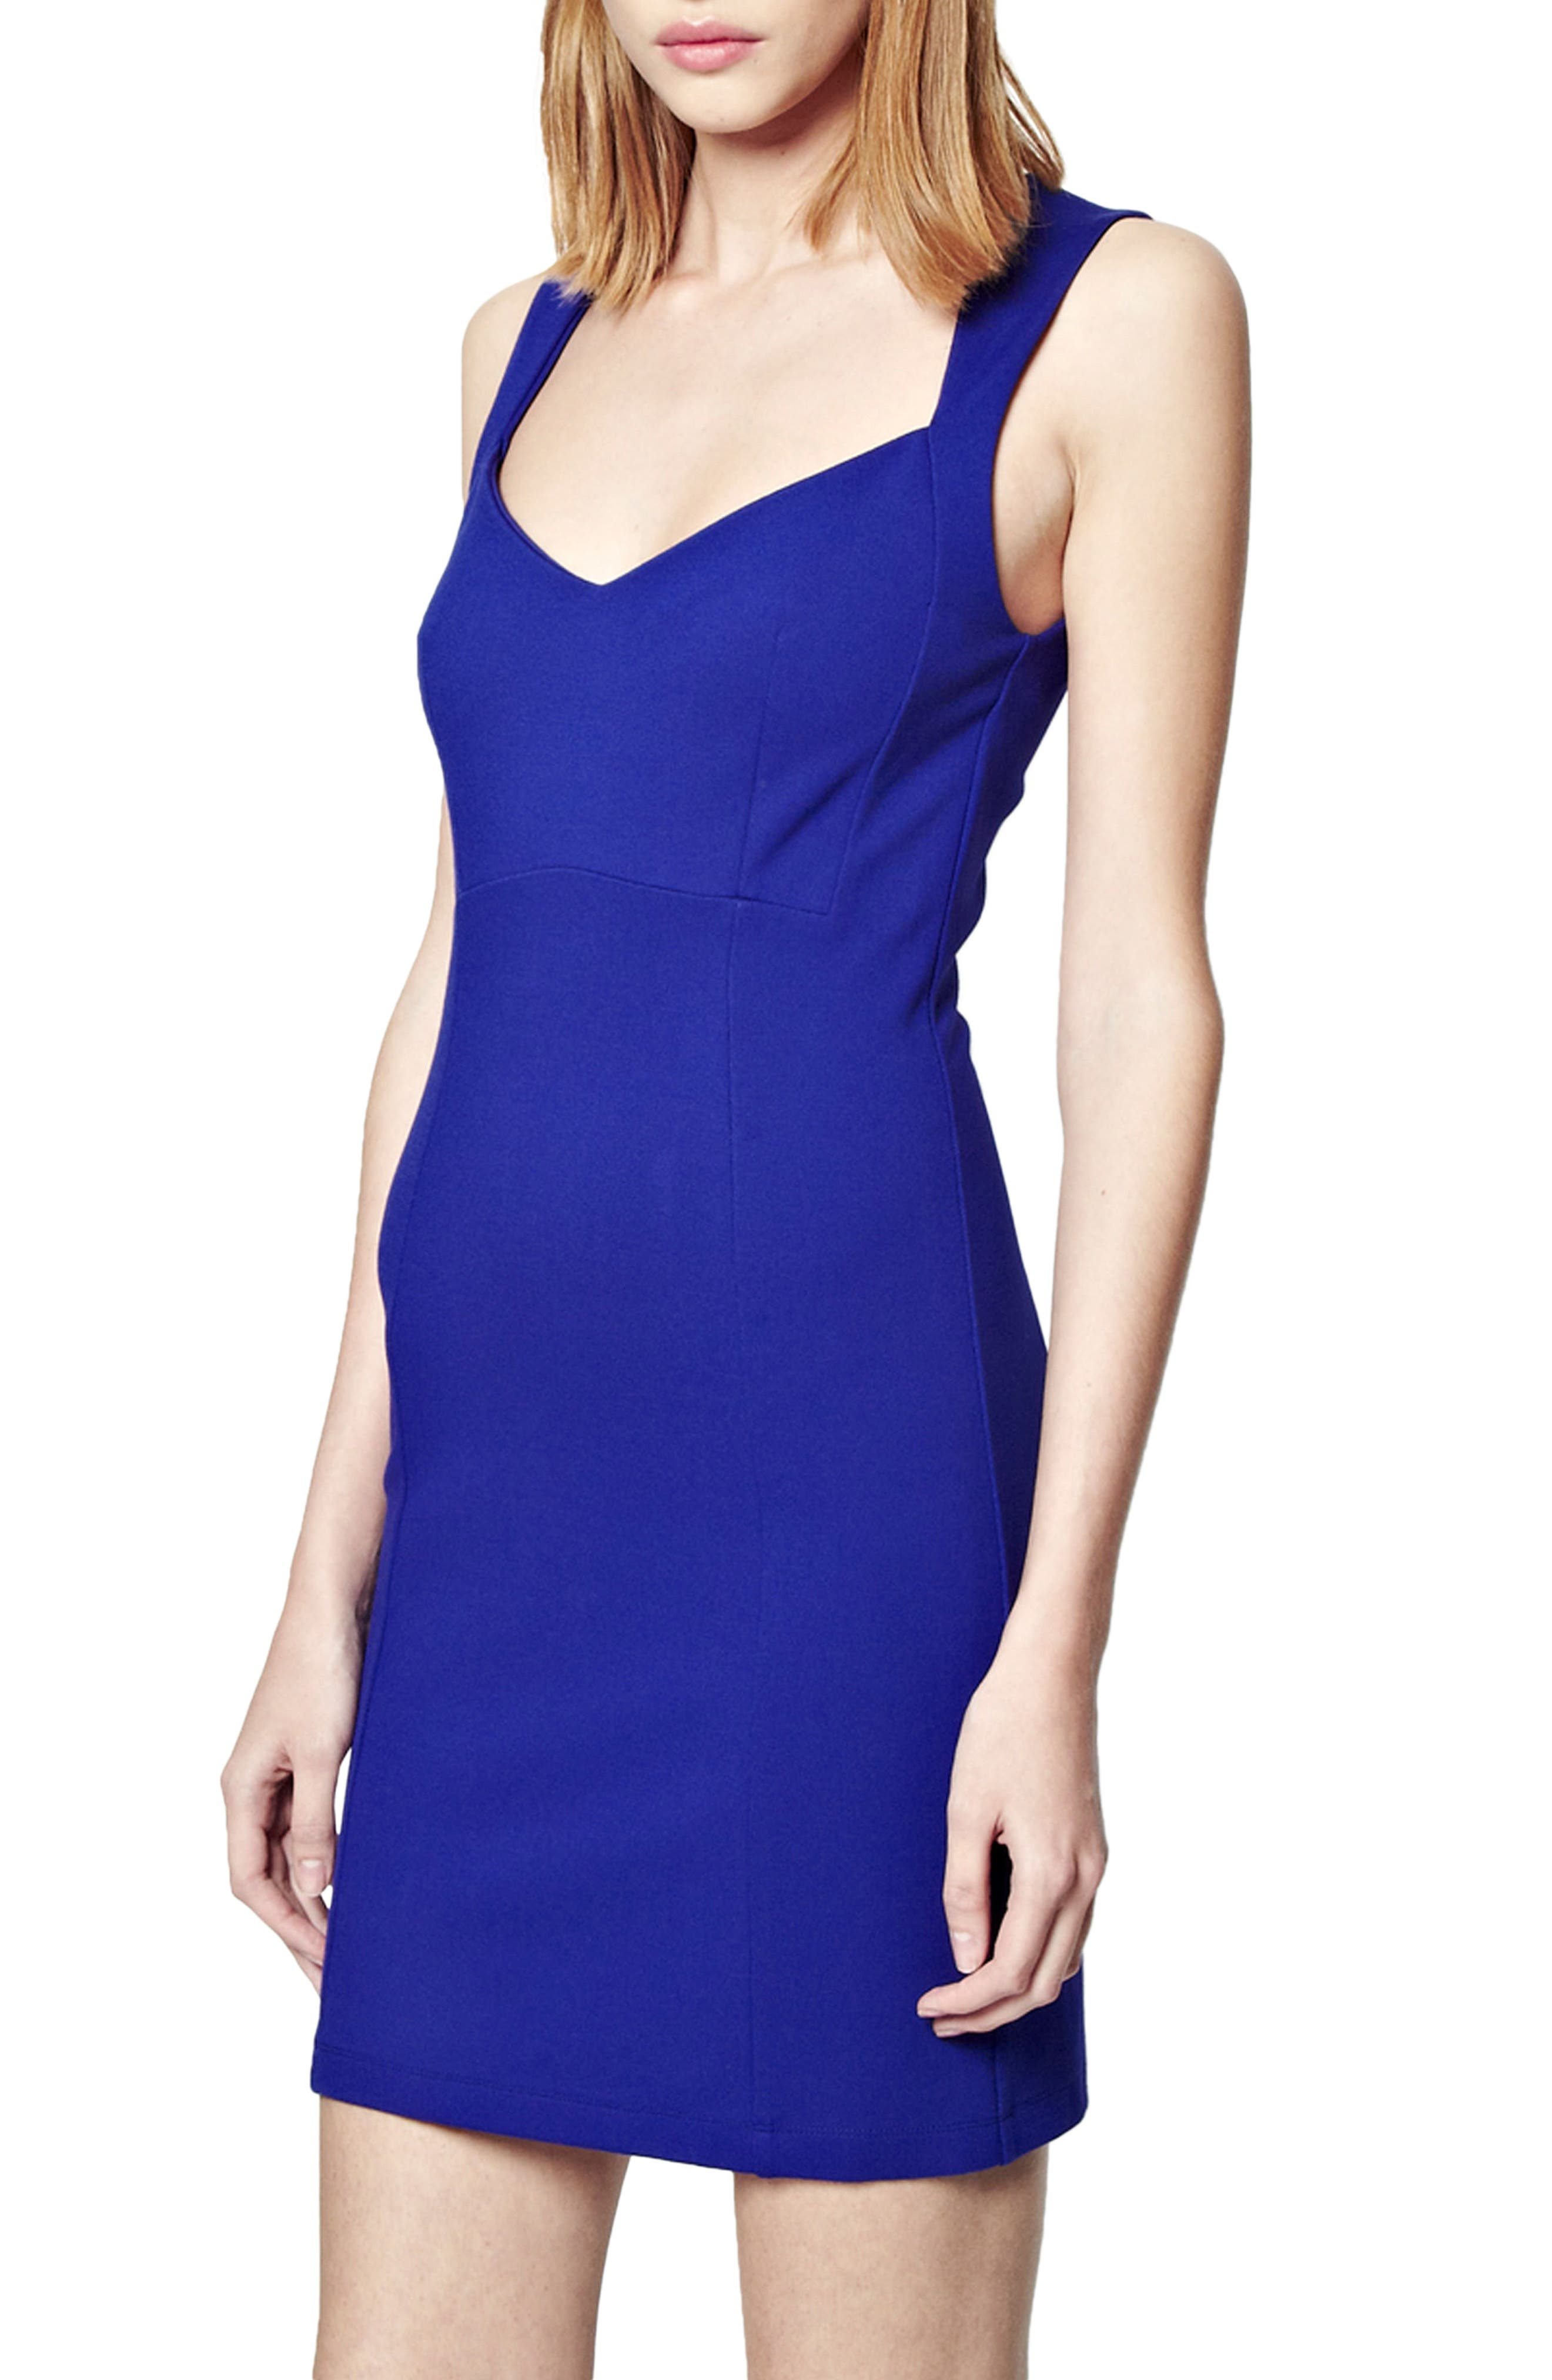 Alternate Image 1 Selected - French Connection 'Lula' Stretch Body-Con Dress